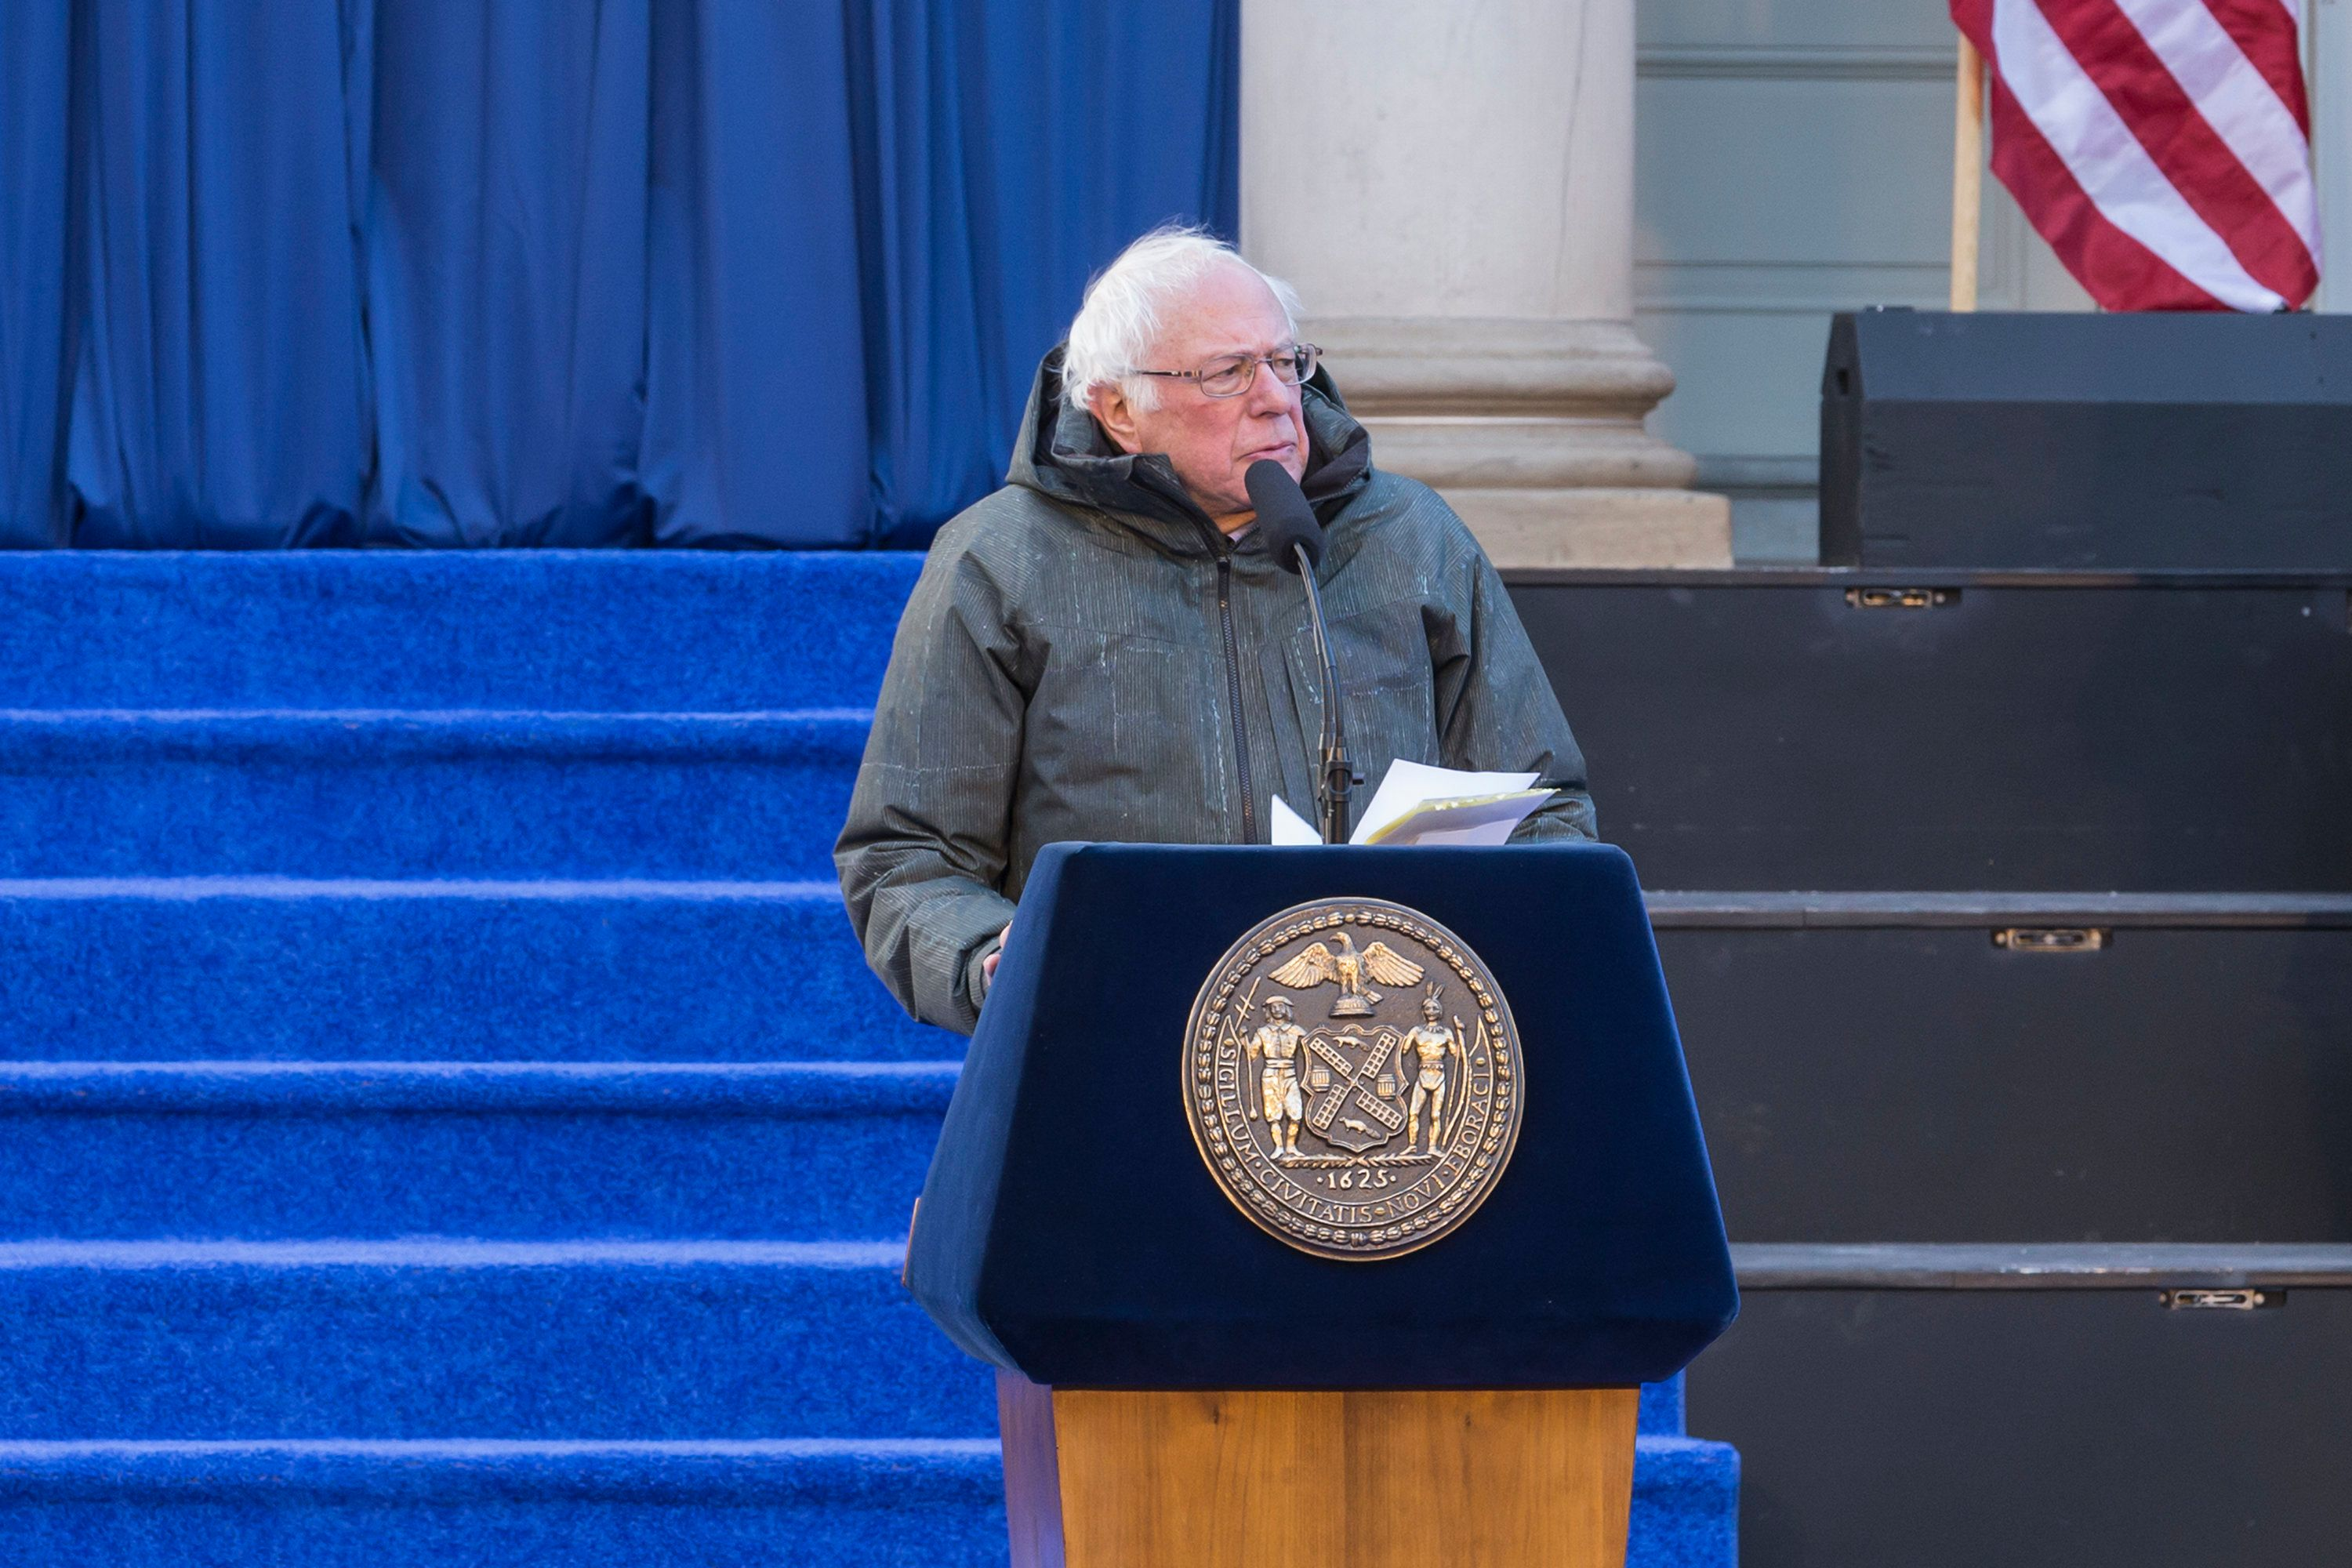 CITY HALL, NEW YORK, UNITED STATES - 2018/01/01: US Senator Bernie Sanders speaks during mayor, comptroller, public advocate inauguration for 2nd term in frigid weather in front of City Hall. (Photo by Lev Radin/Pacific Press/LightRocket via Getty Images)